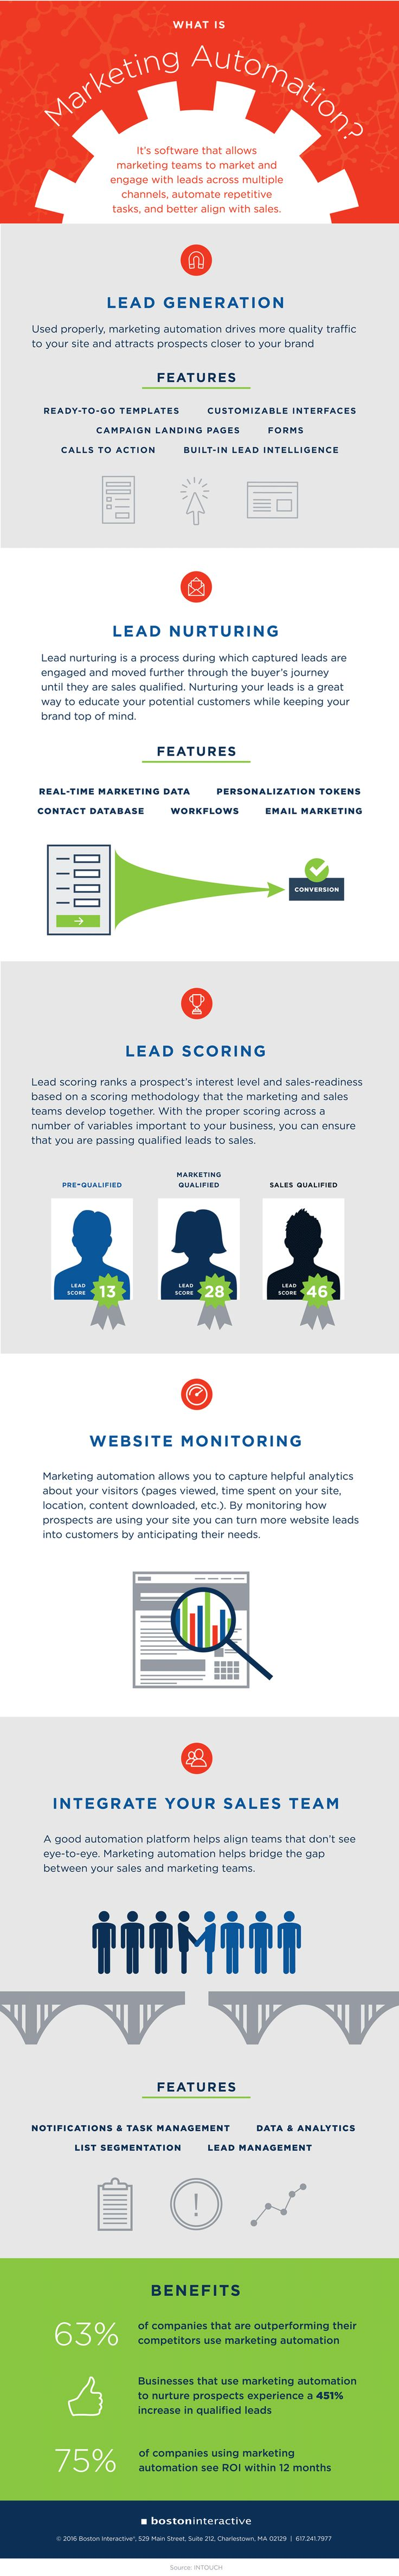 The Definition of Marketing Automation [Infographic]  ||  It's time to make your role more effective. Marketing Automation takes care of all of the mundane tasks you never get around to doing, generating and nurturing leads in the process!  https://www.cloud10marketing.co.uk/blog/the-definition-of-marketing-automation-infographic?utm_campaign=crowdfire&utm_content=crowdfire&utm_medium=social&utm_source=pinterest